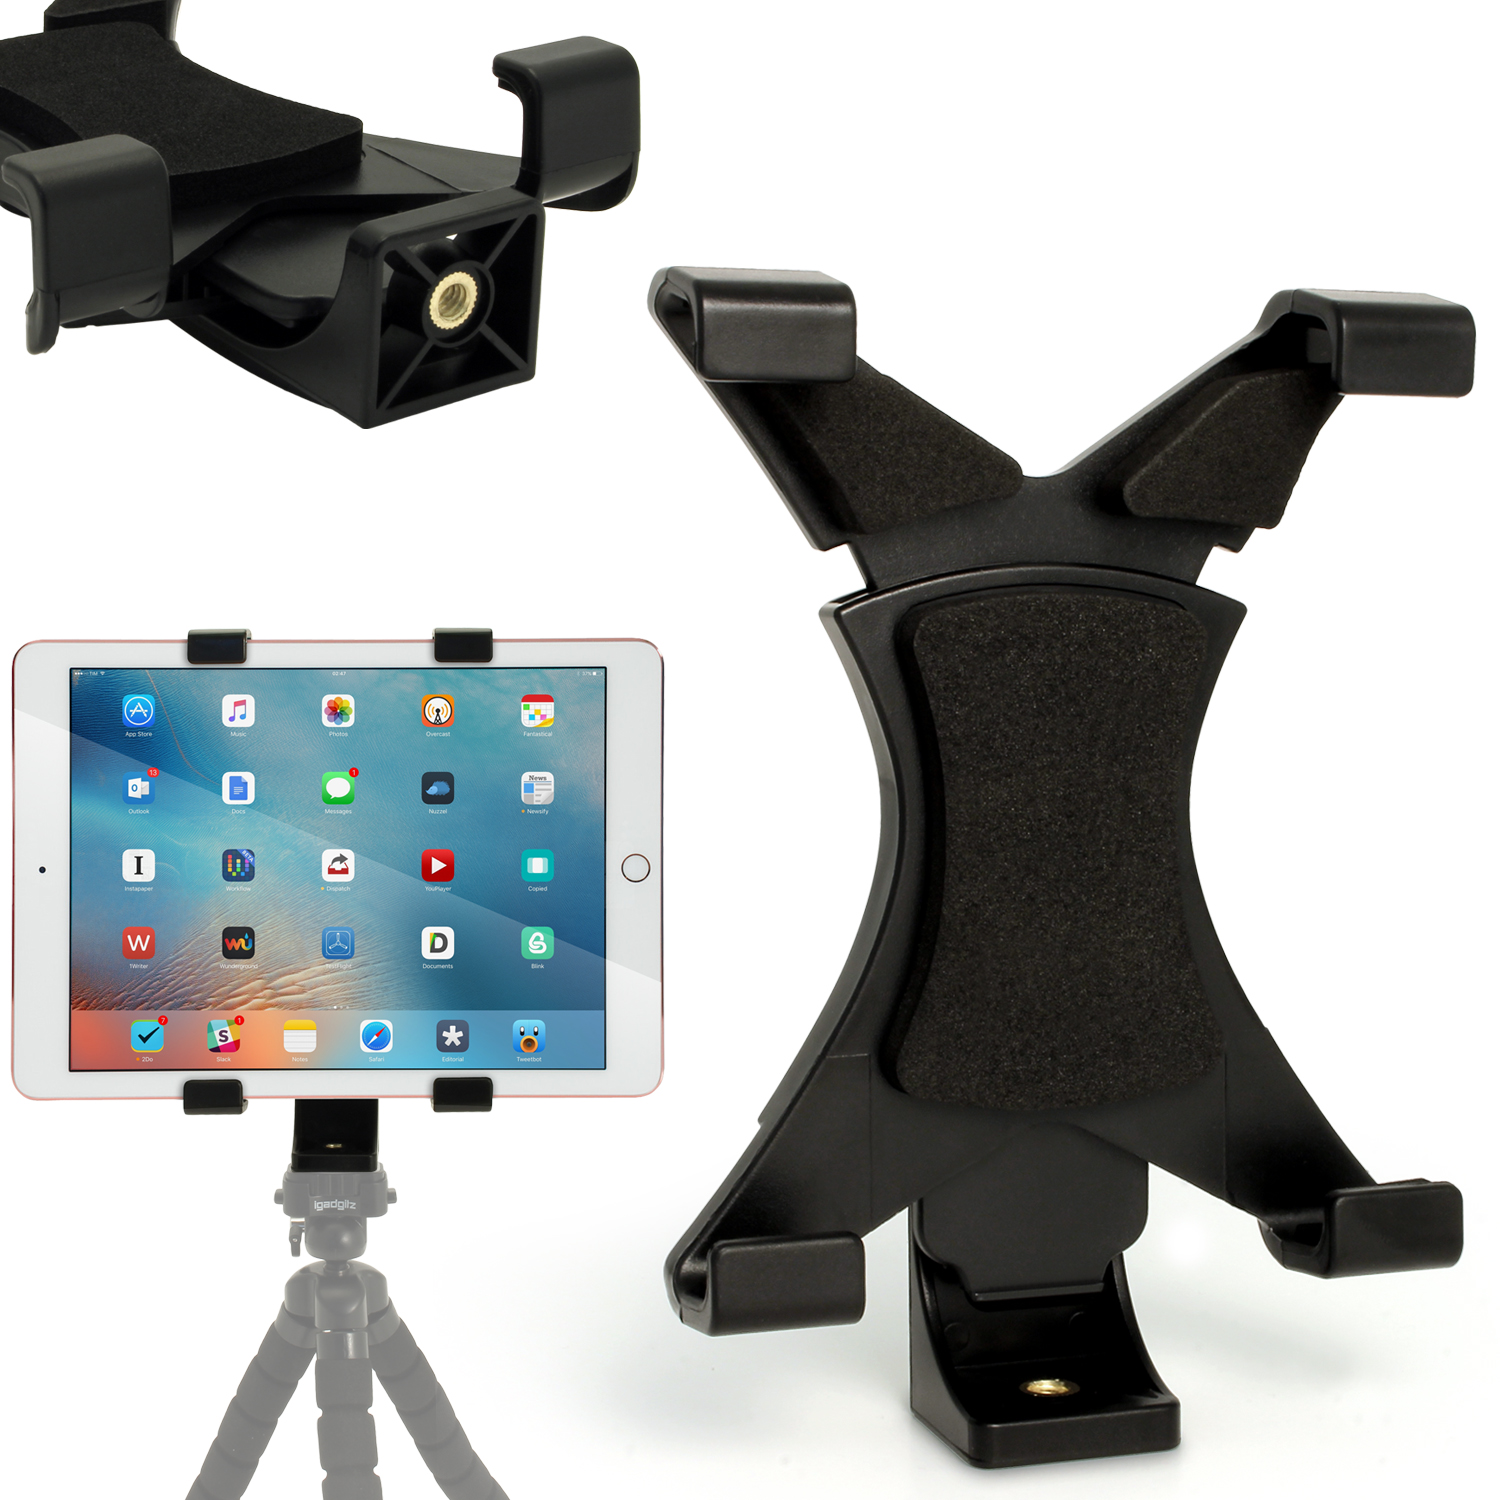 igadgitz universal tablet holder mount bracket for tripods with 14 inch screw thread - Tablet Mount